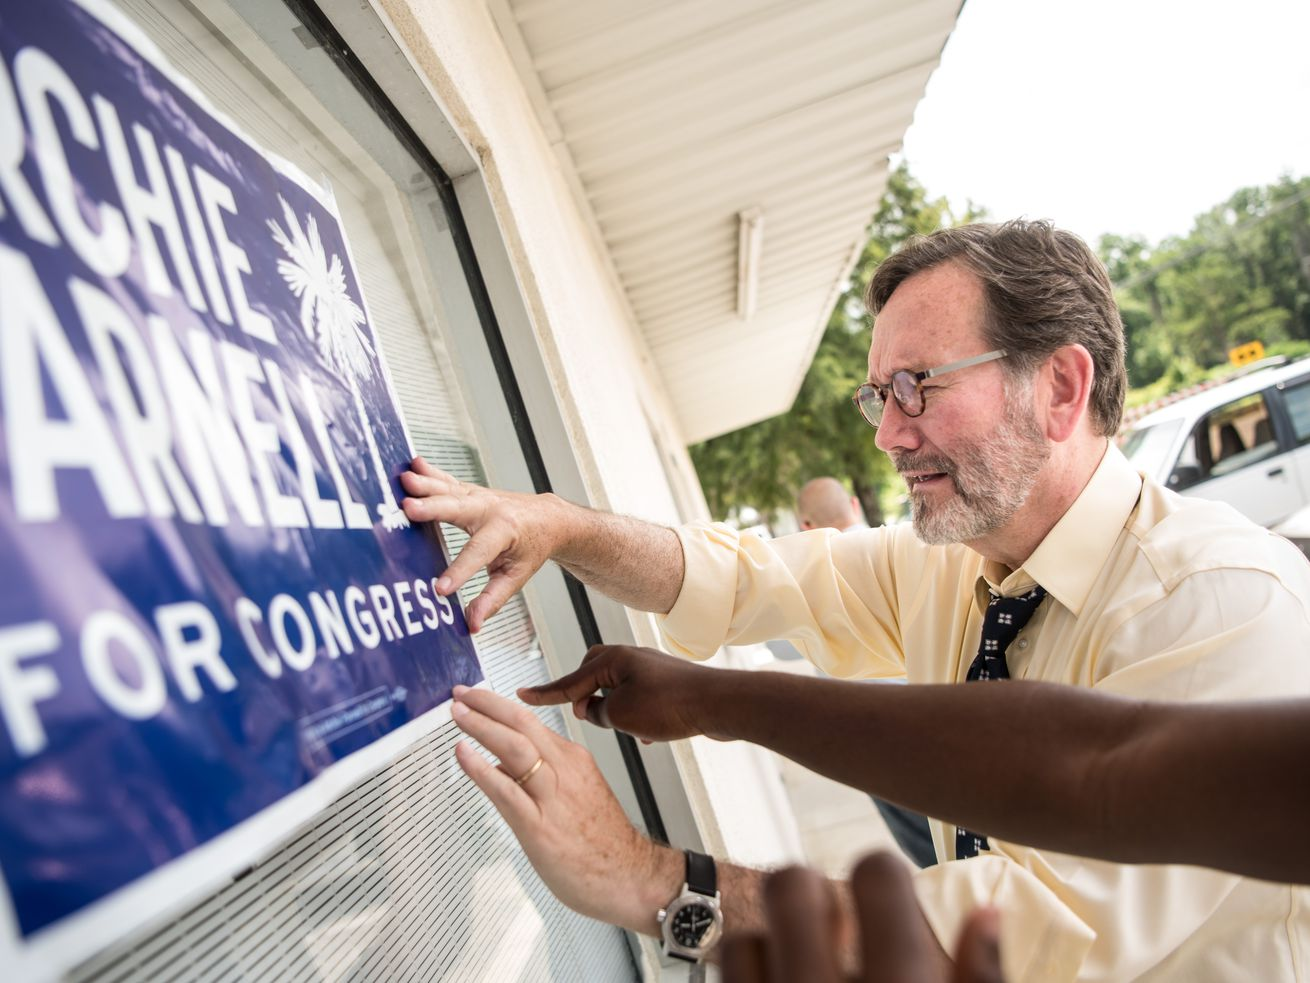 Democratic congressional candidate Archie Parnell hangs up a sign.